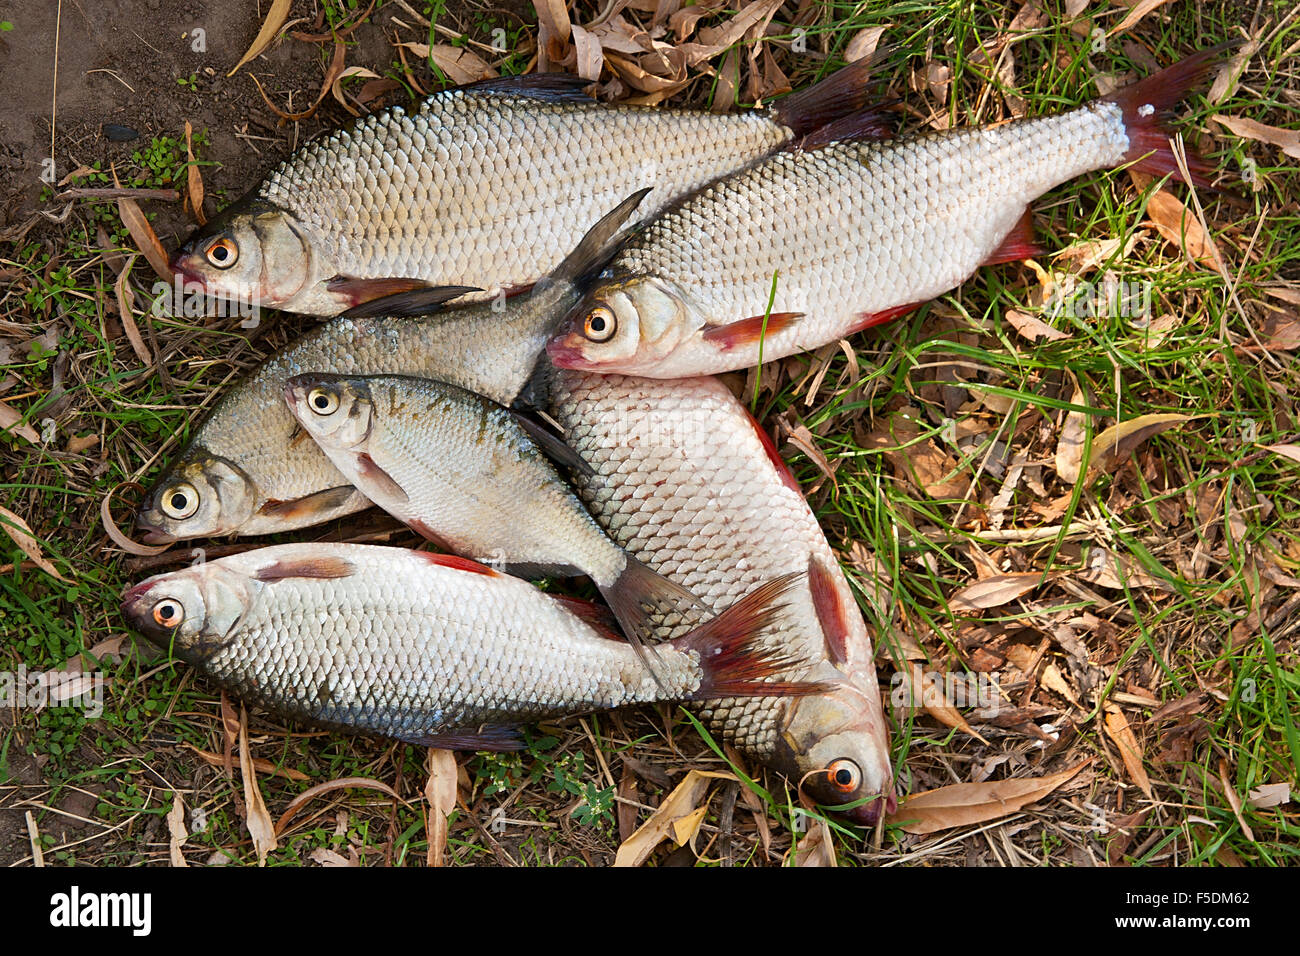 Freshwater fish bream - Pile Of Freshwater Roach Fish And Bream Freshwater Fish As Background Several Of Roach Fish